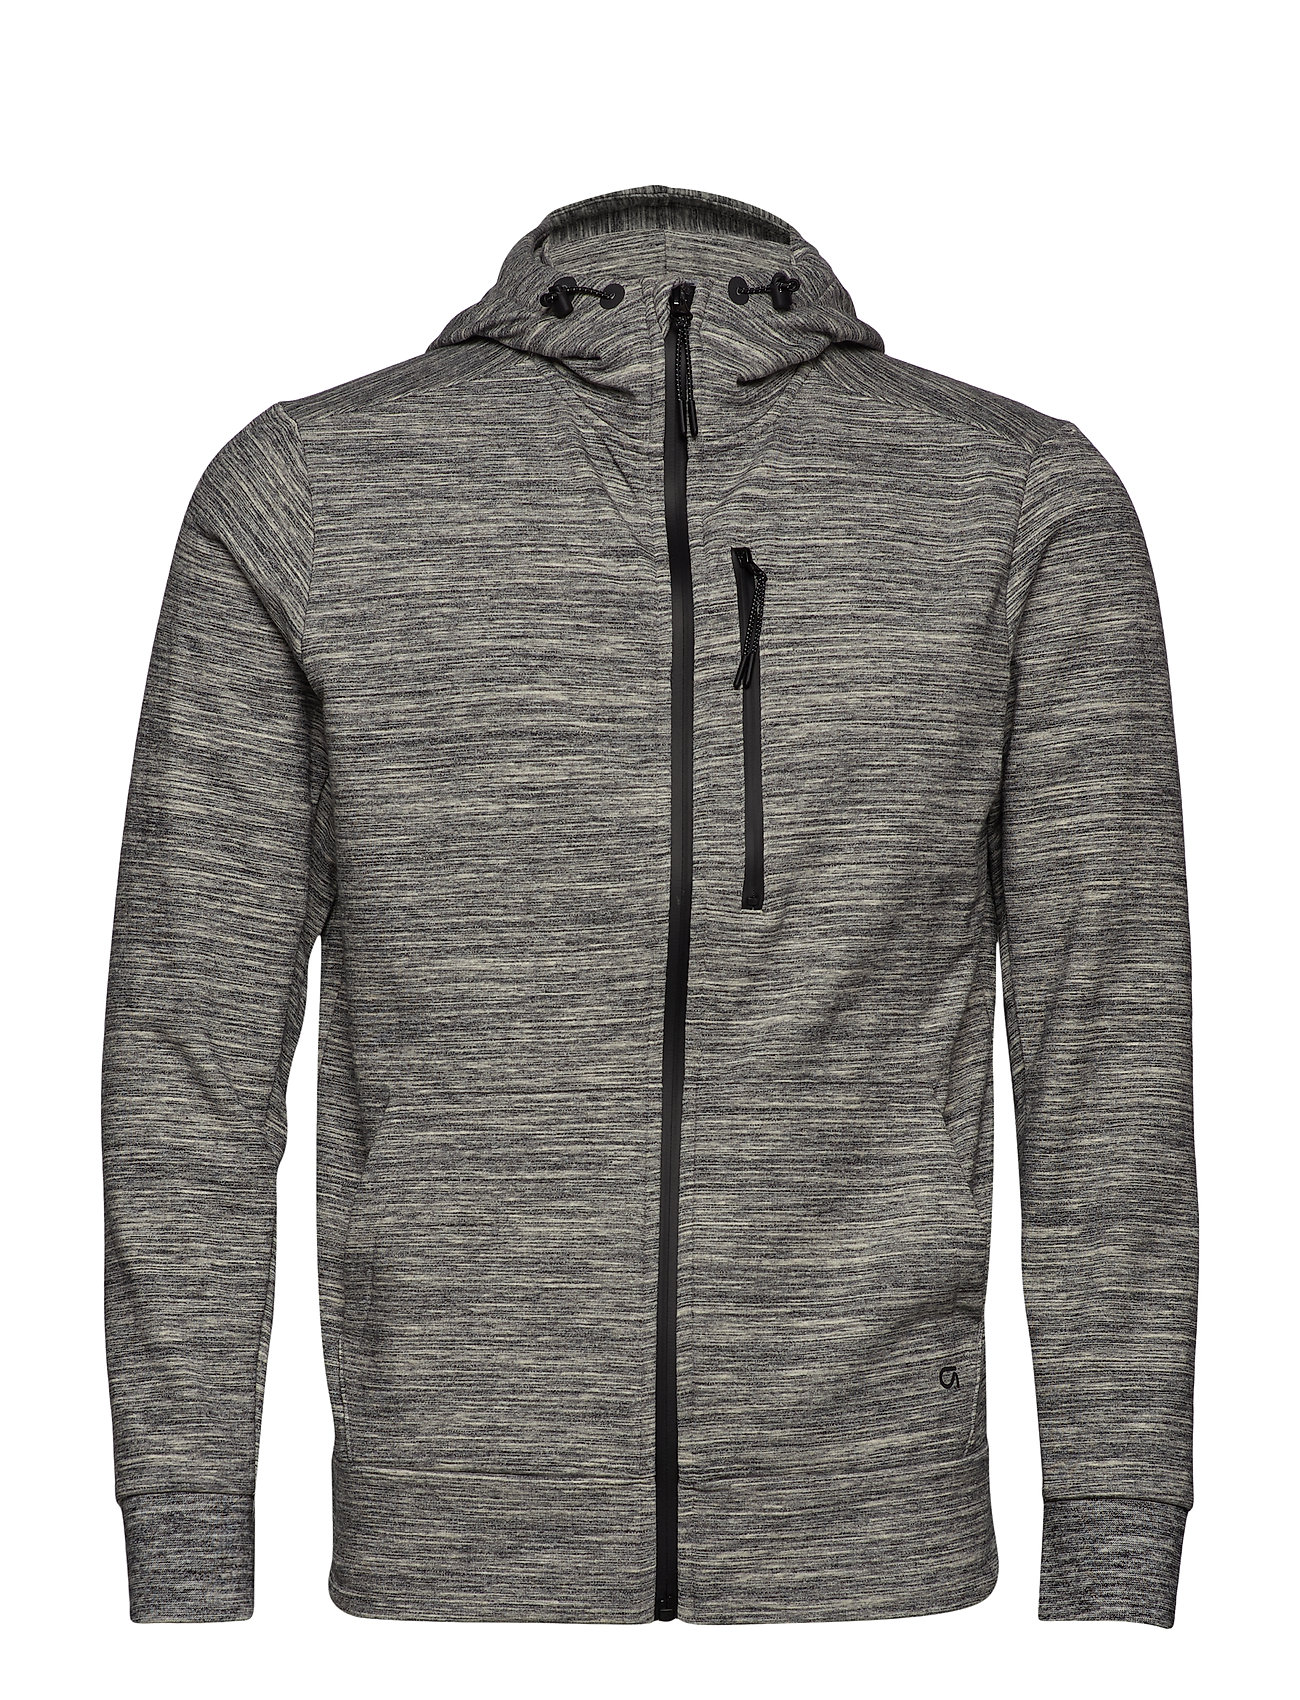 GAP GapFit All-Elements Fleece Full-Zip Hoodie - GREY SPACEDYE